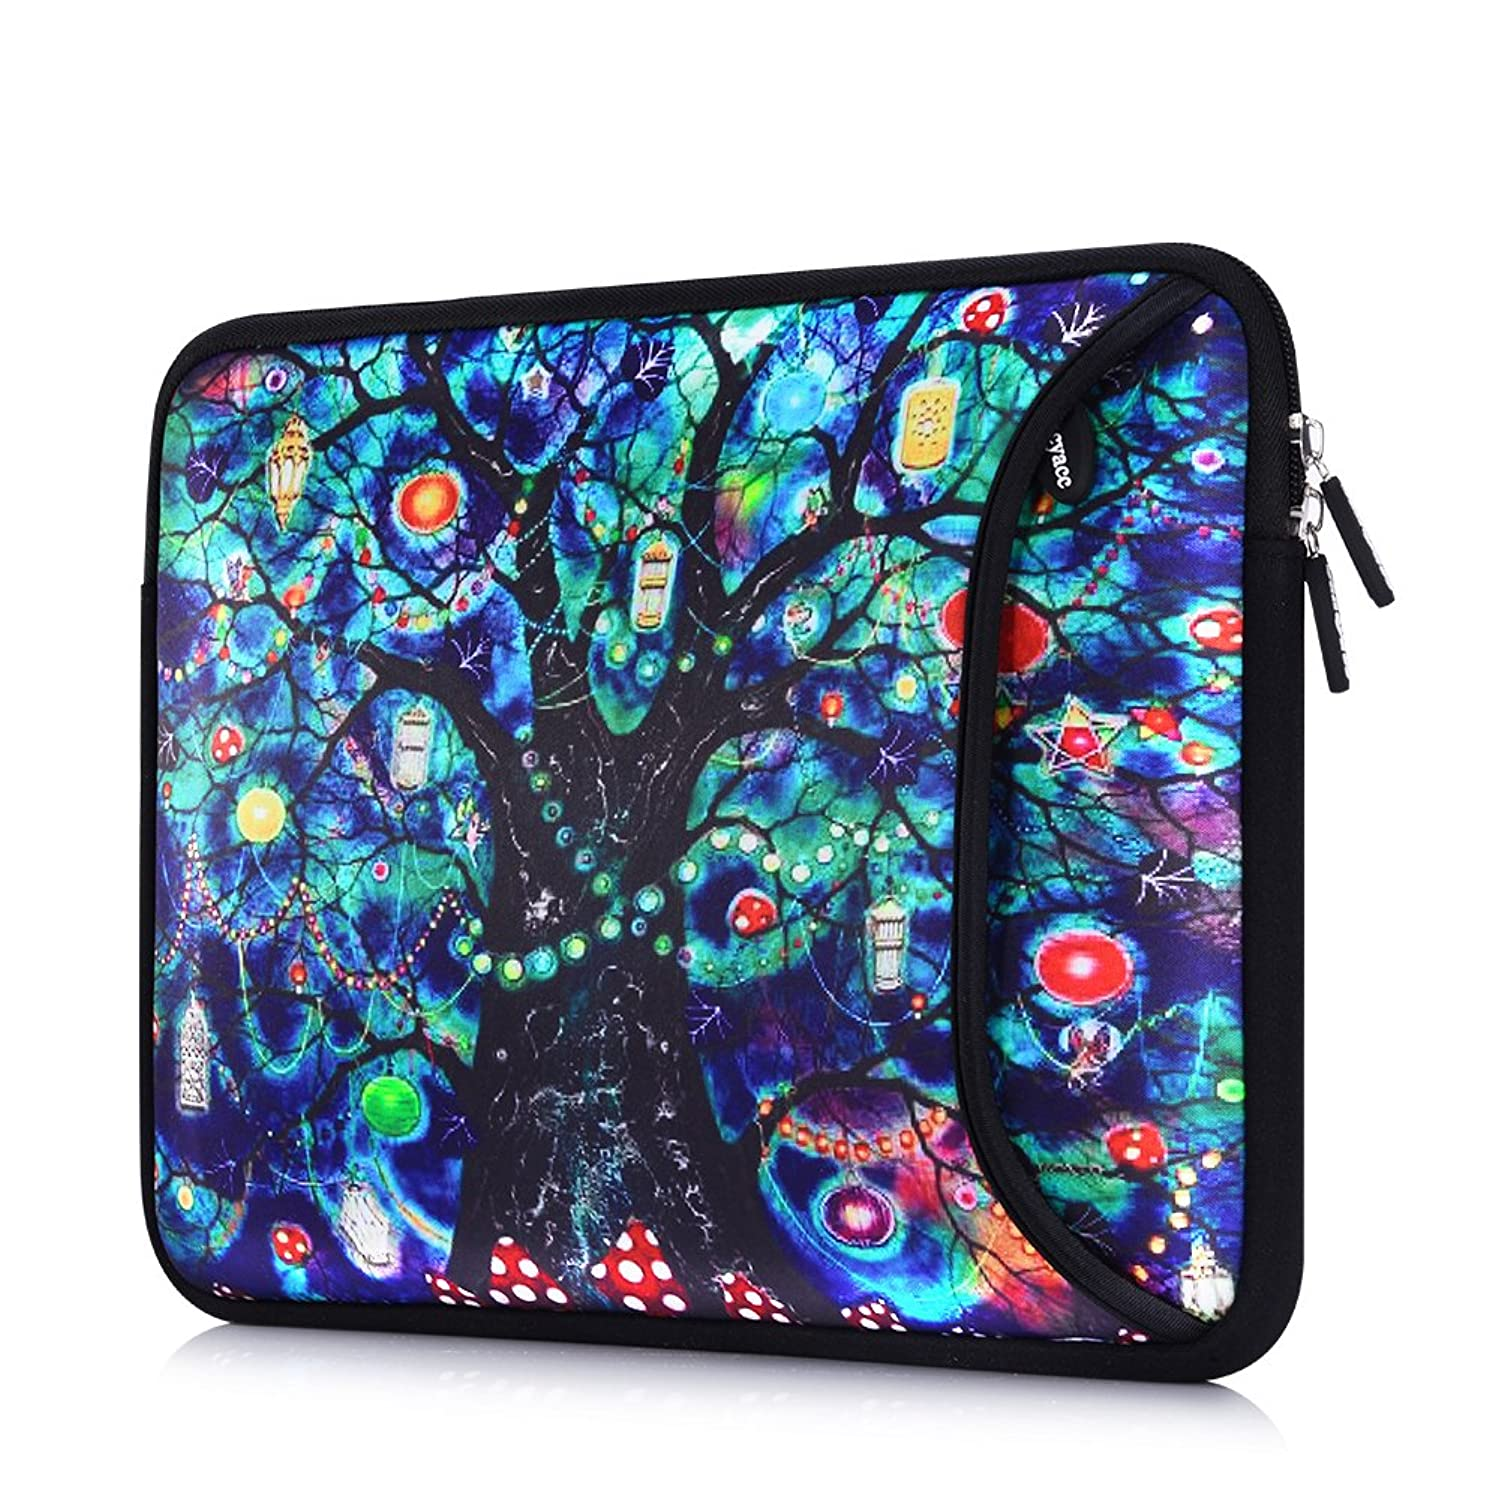 Sancyacc Laptop Sleeve, Water-Resistant Sleeve Bag Cover 15-15.6 Inch, Neoprene Laptop Bag Case, Full Protective Carrying Notebook Pocket for MacBook Air/Pro (Lifetree)